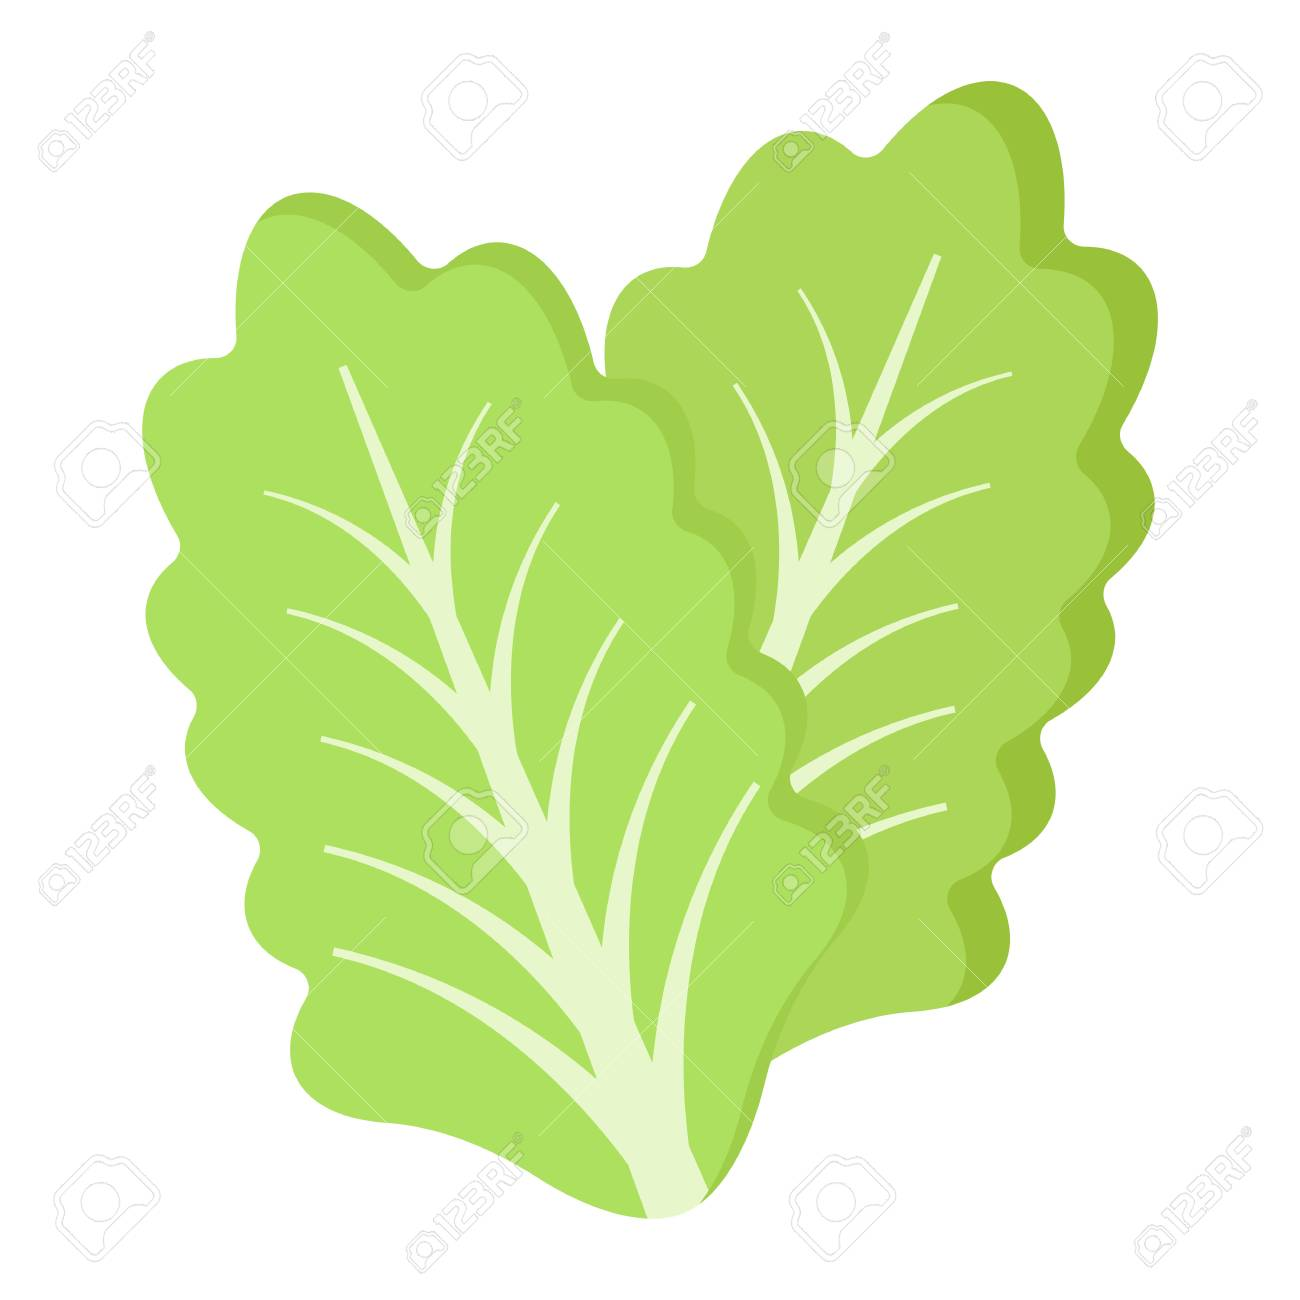 lettuce flat icon, vegetable and salad leaf, vector graphics,.. royalty  free cliparts, vectors, and stock illustration. image 80022279.  123rf